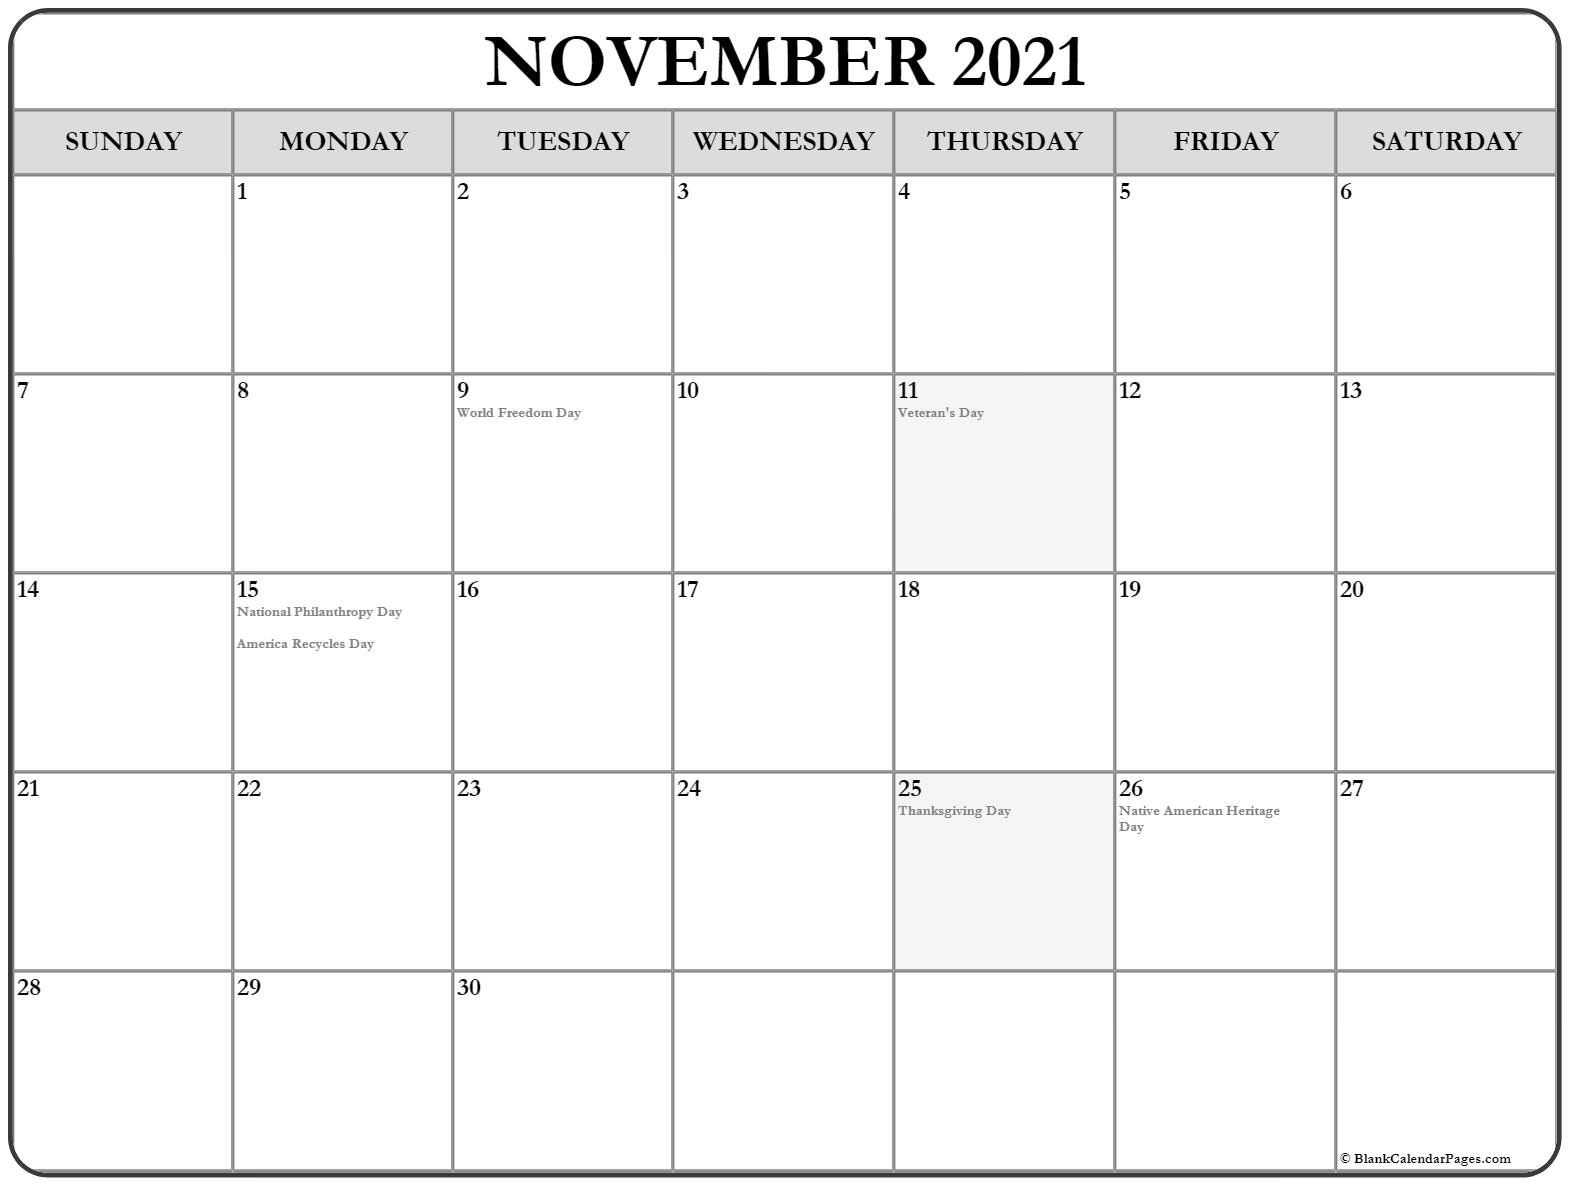 November 2019 USA holiday calendar. Incluides US federal holidays and observations